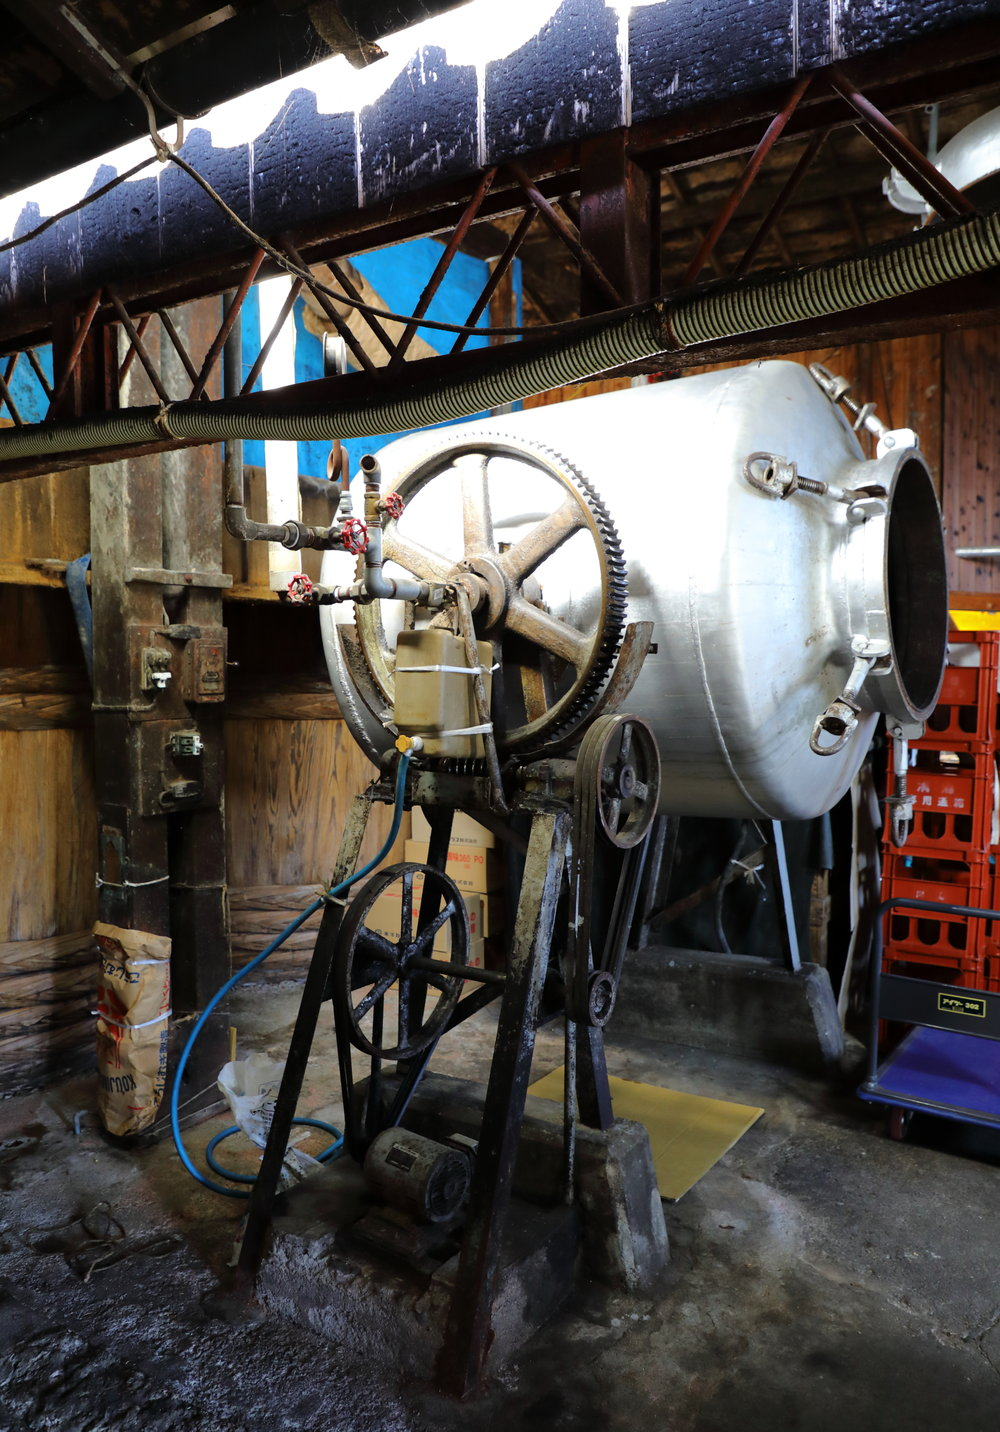 The giant steam kettle used to steam the soybeans.